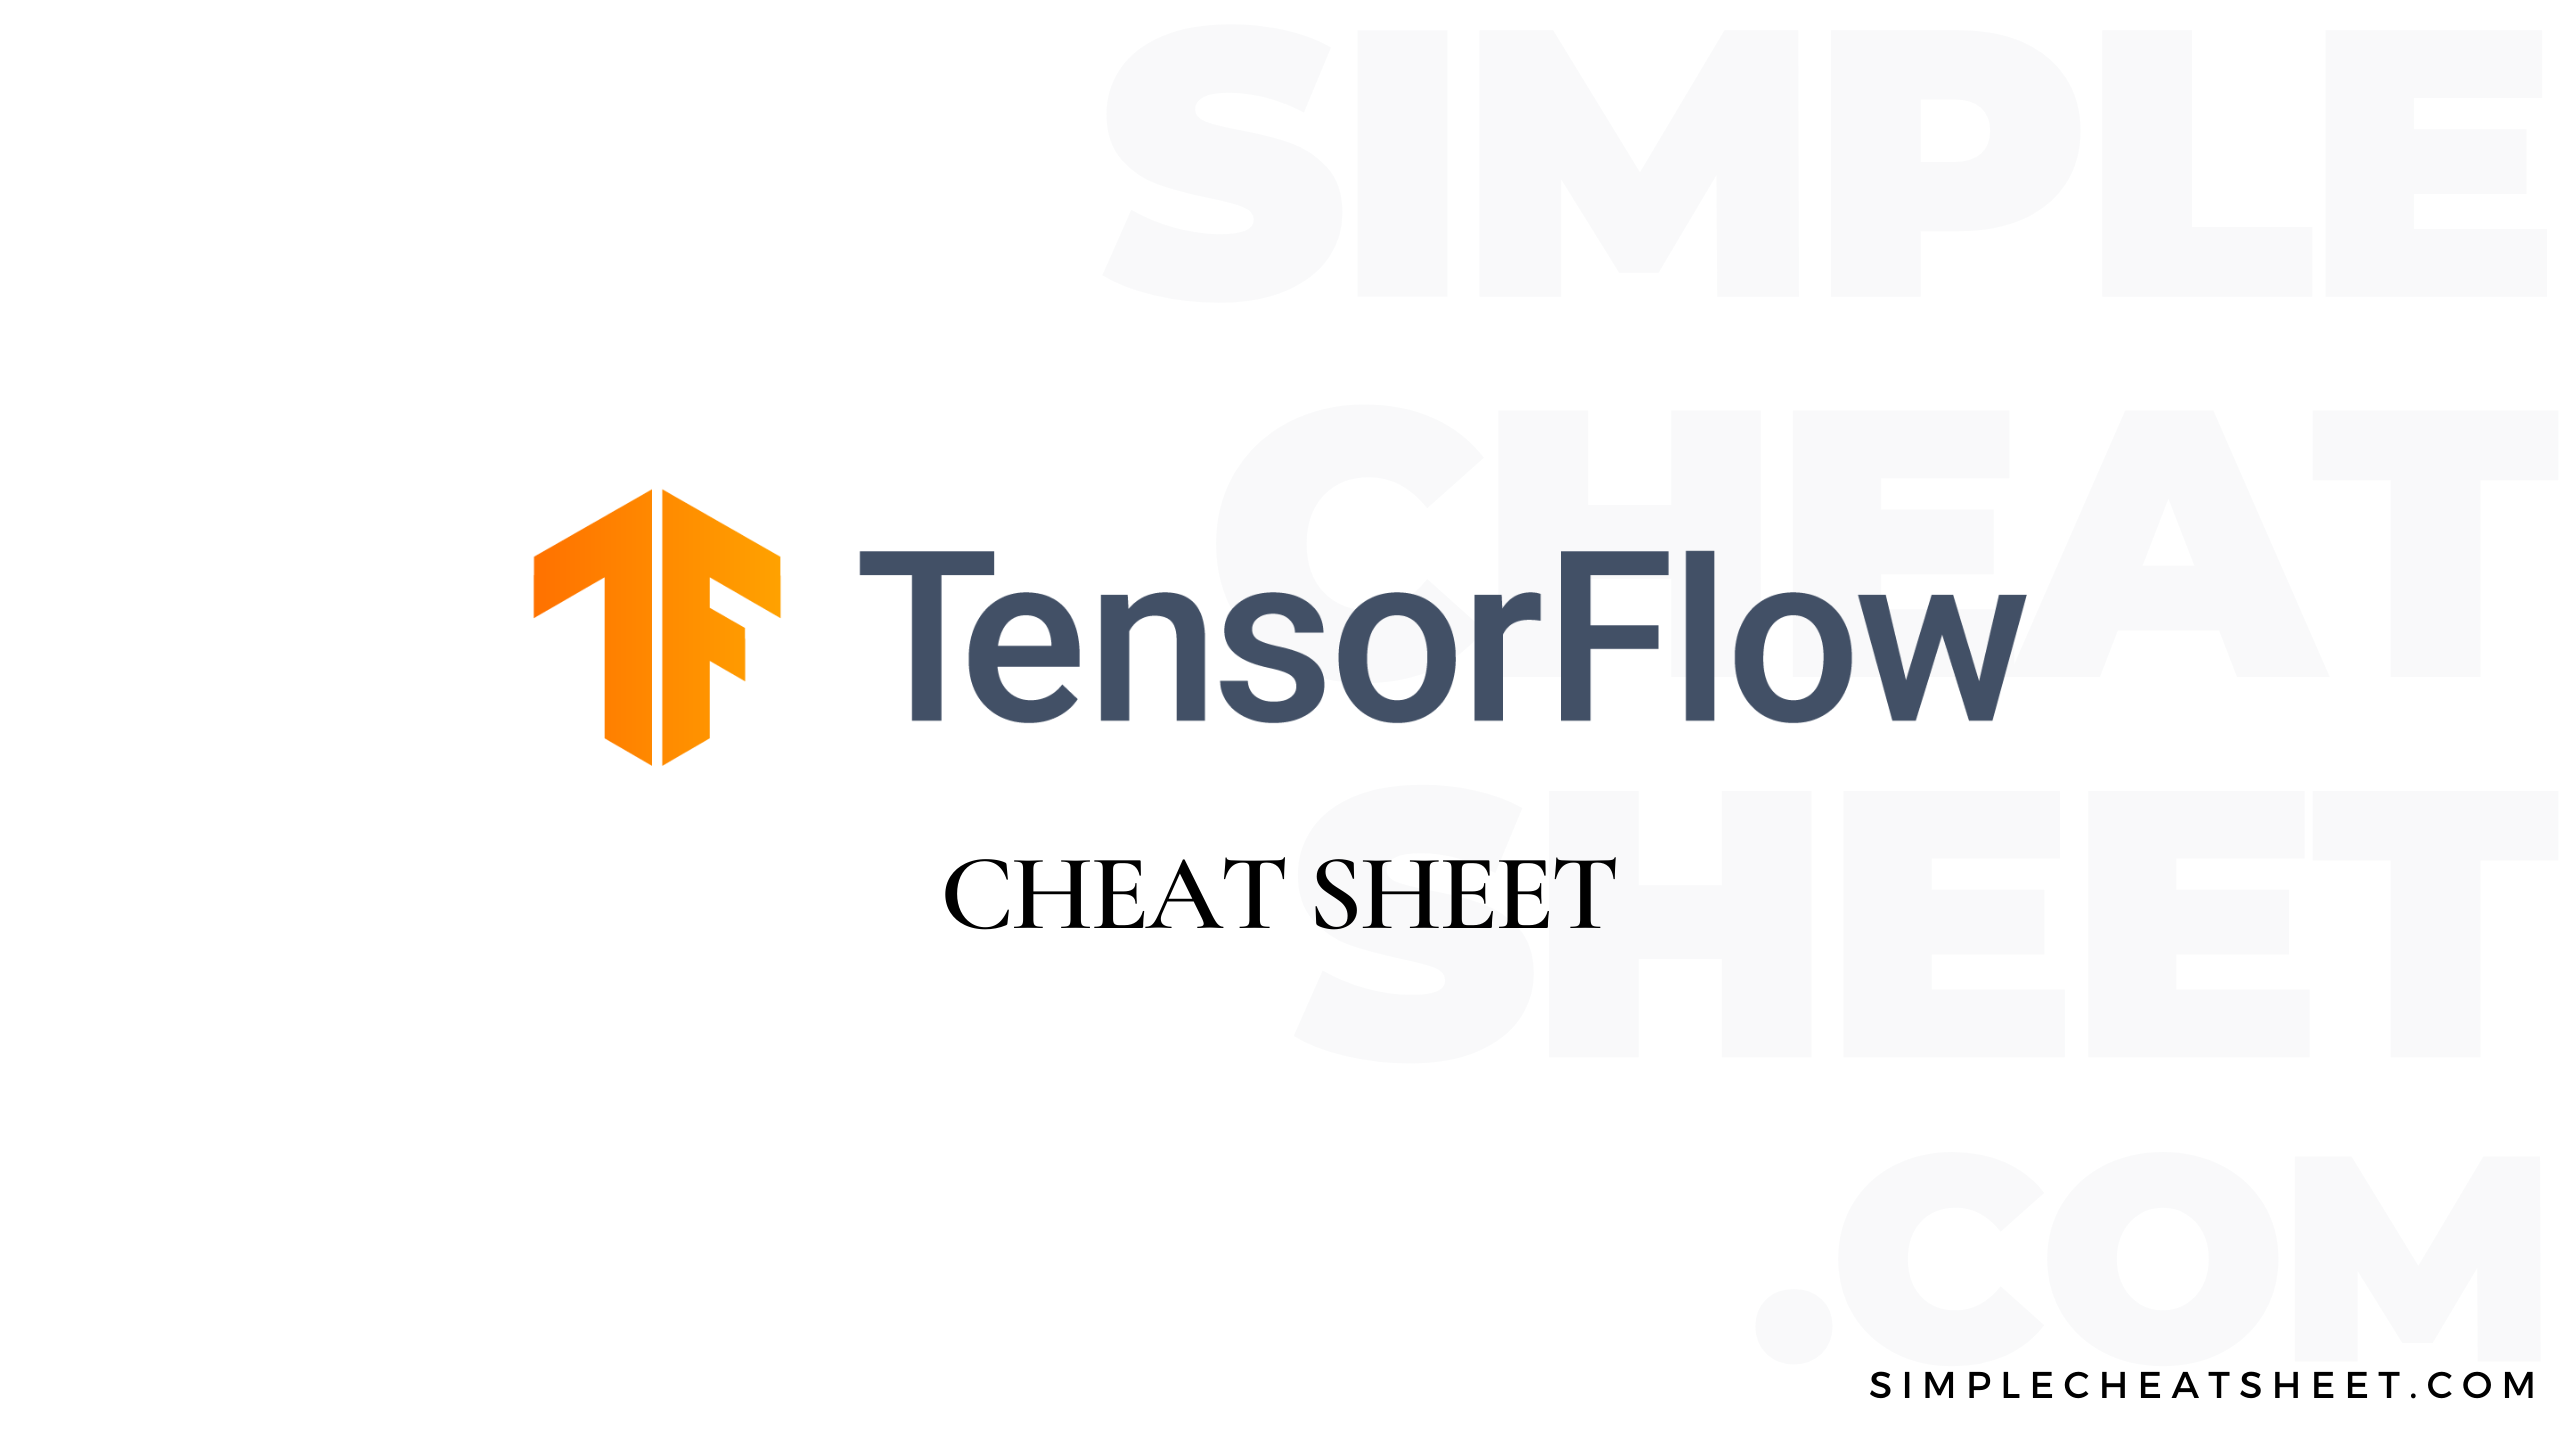 TensorFlow Cheat Sheer